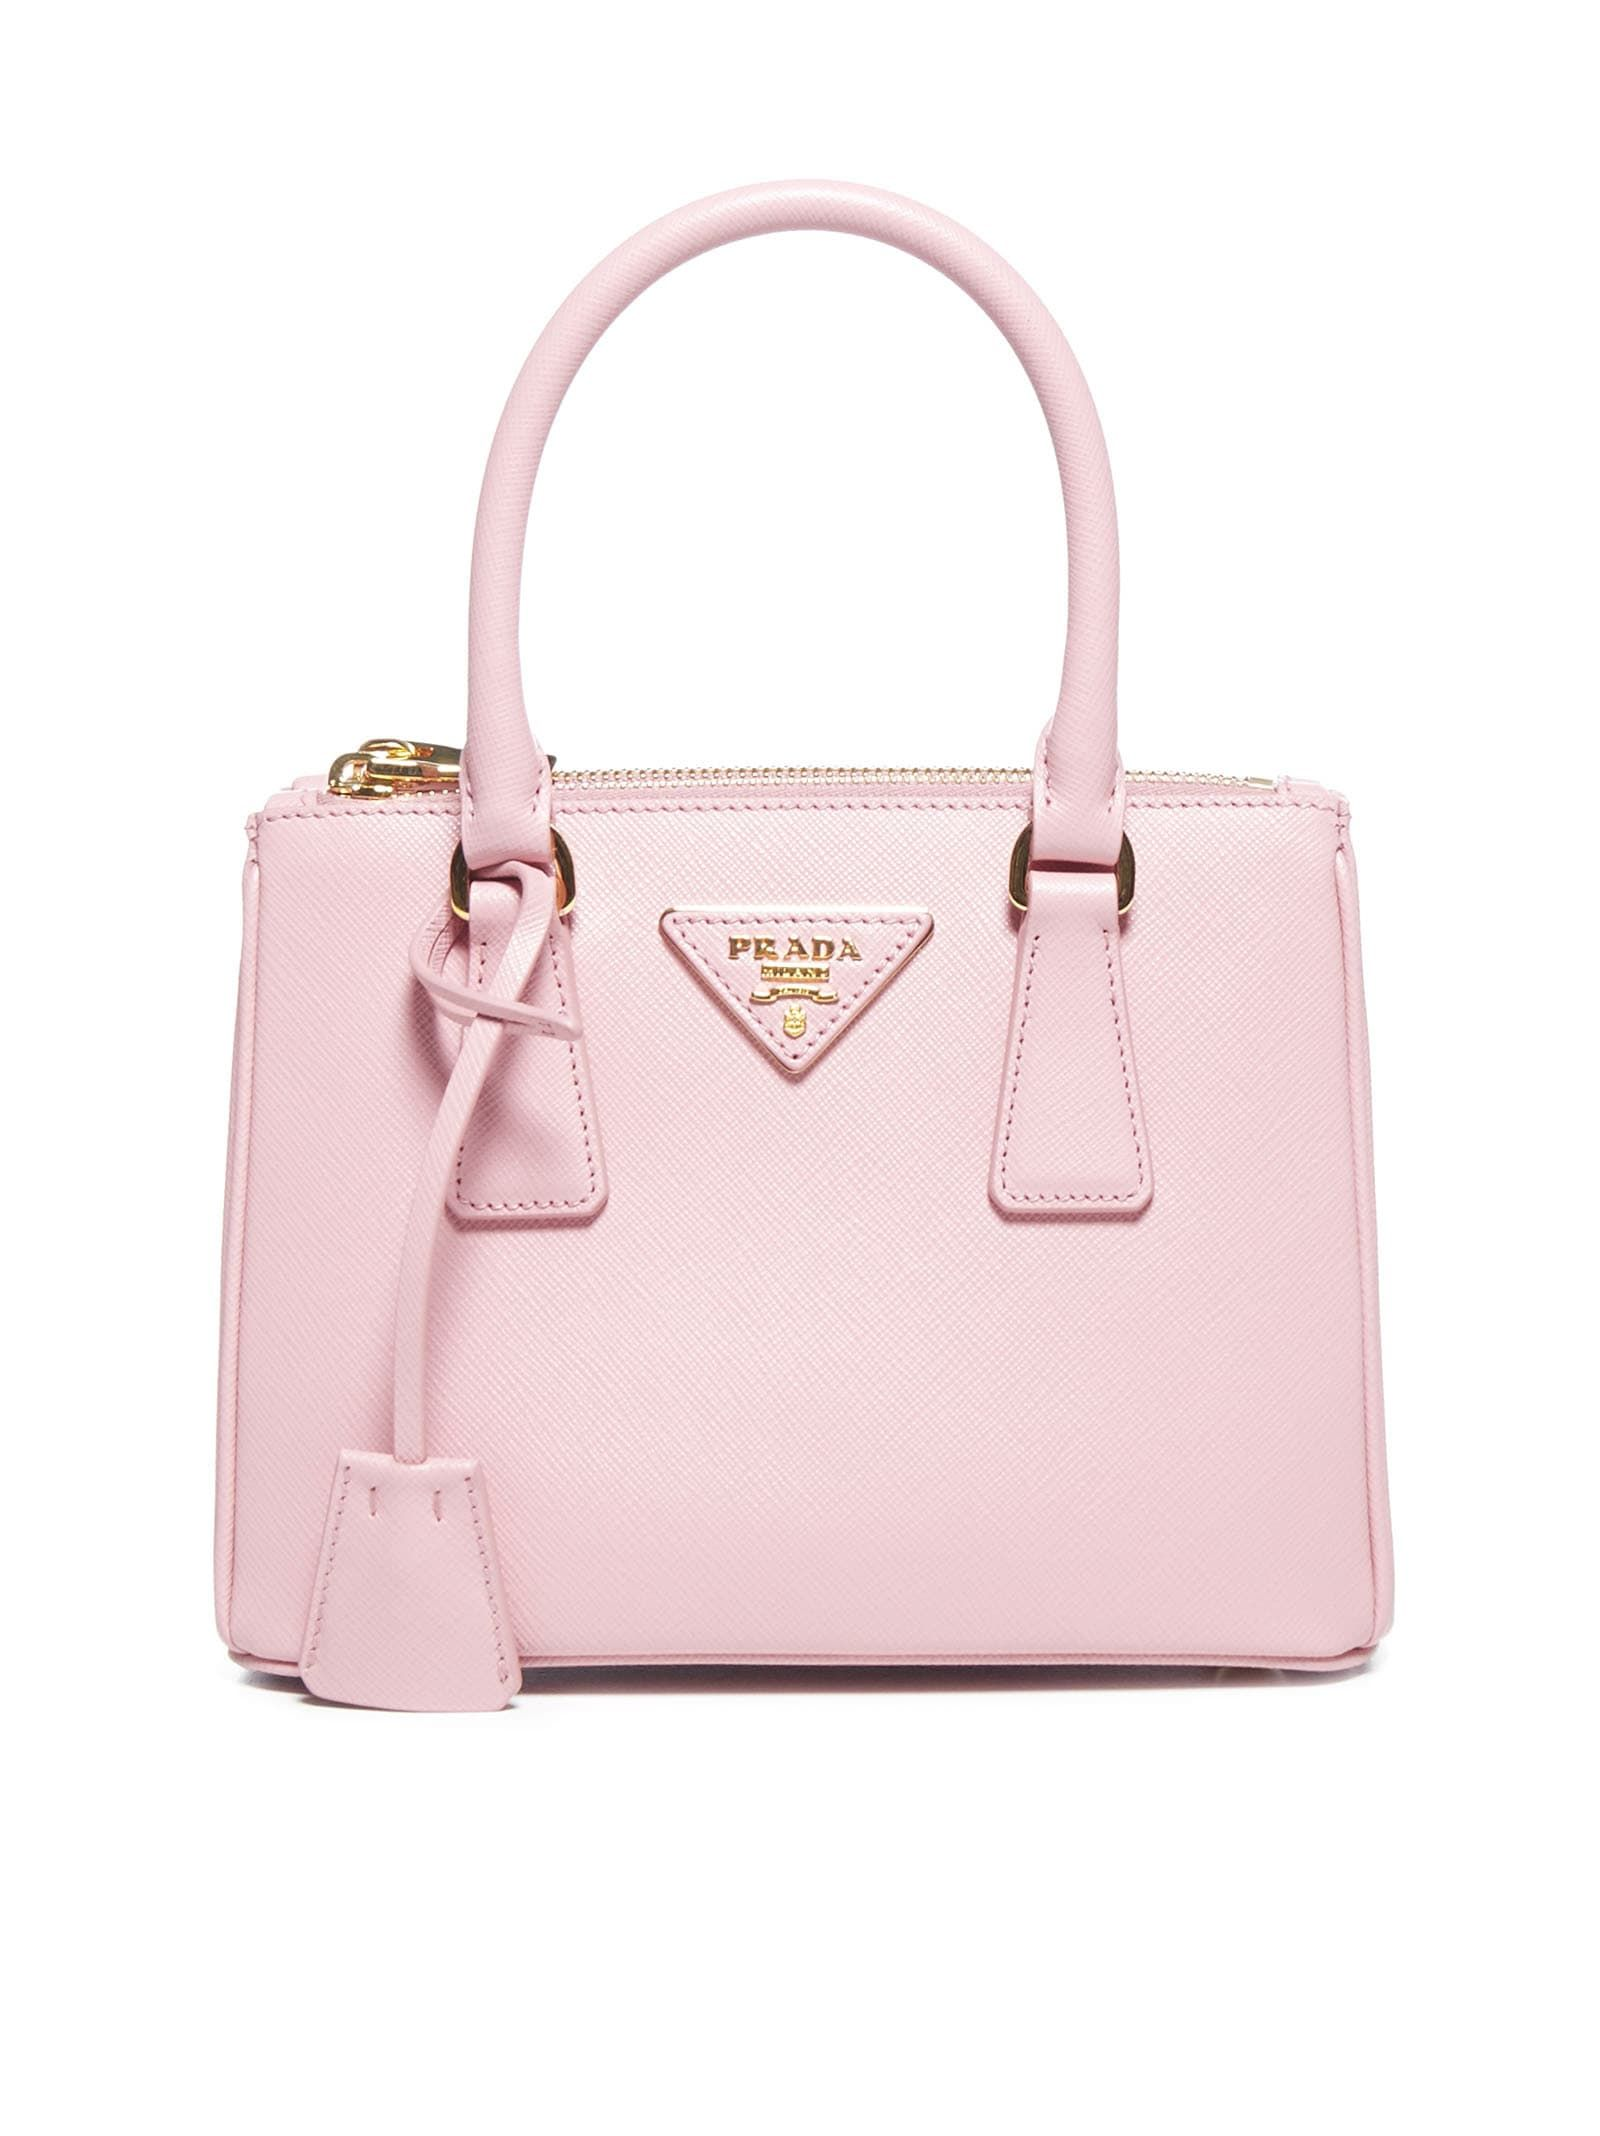 Photo of Best price on the market at italist | Prada Prada Galleria Mini Tote